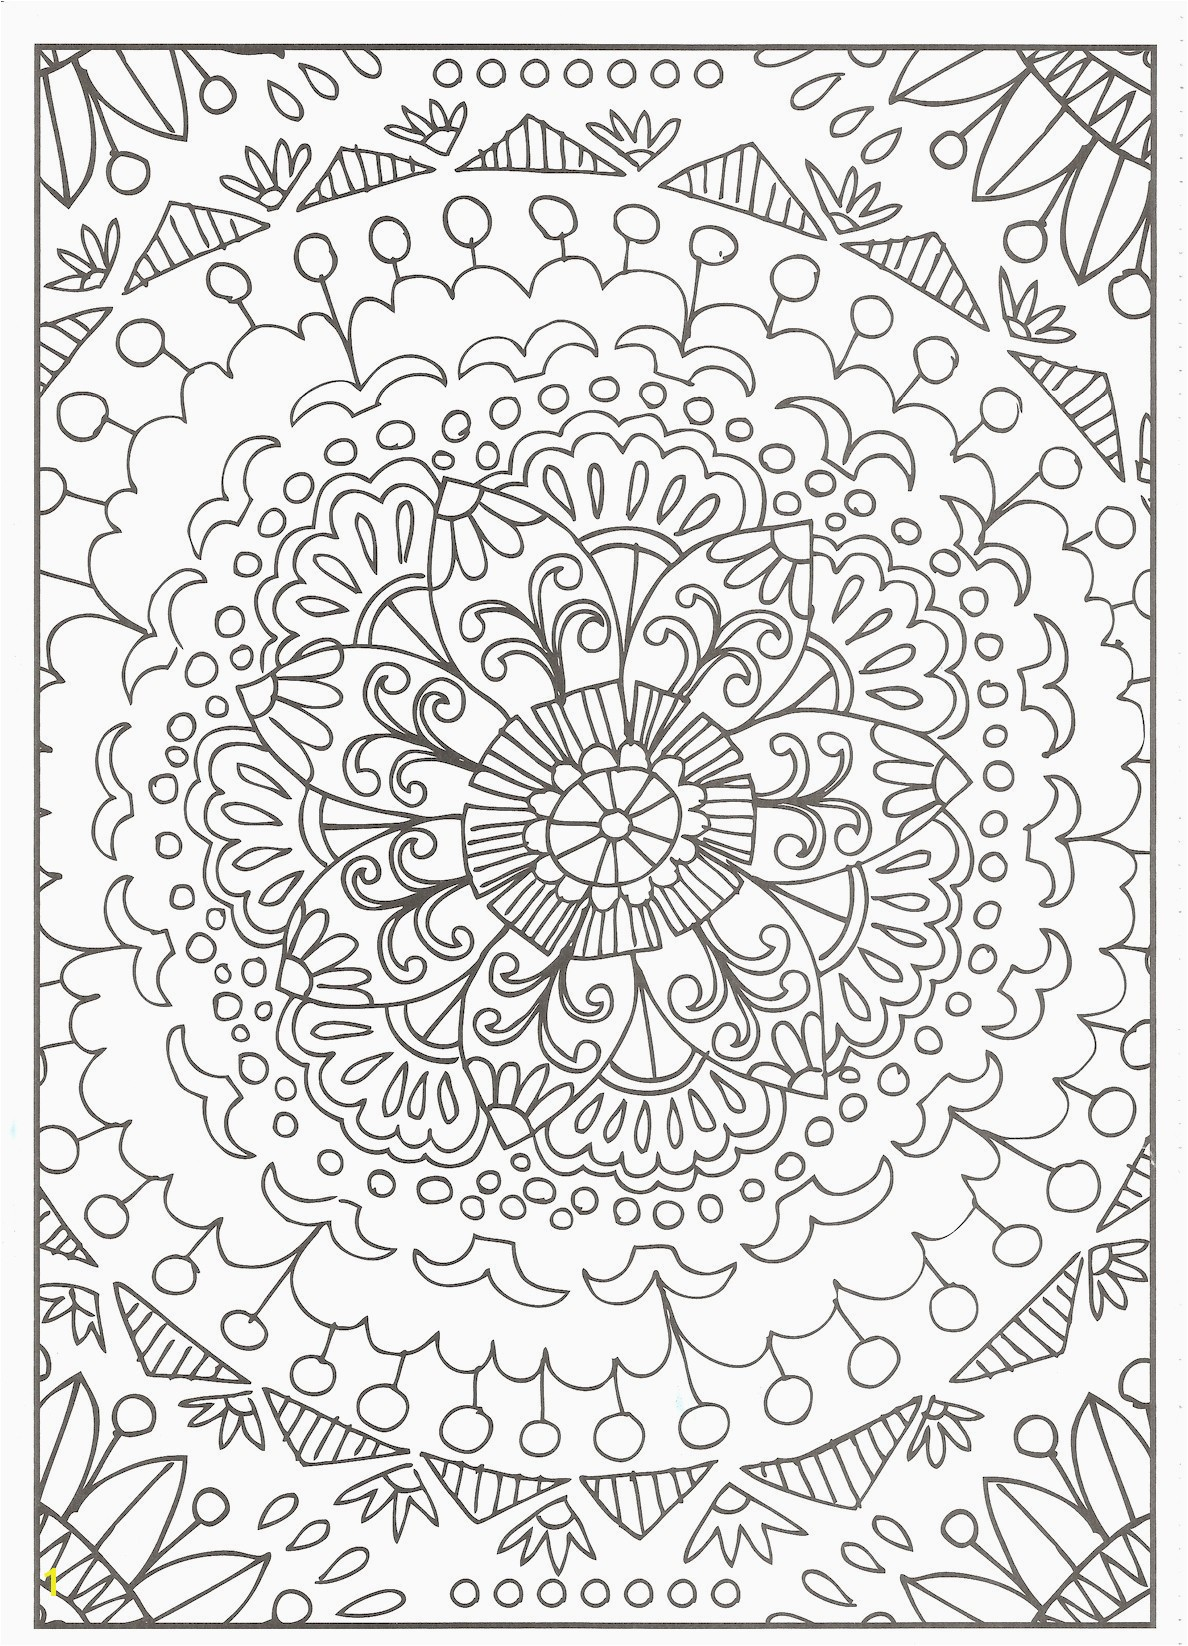 Byzantine Coloring Pages Awesome Link Coloring Pages New Best Ocean Coloring Pages Best Printable Cds graph